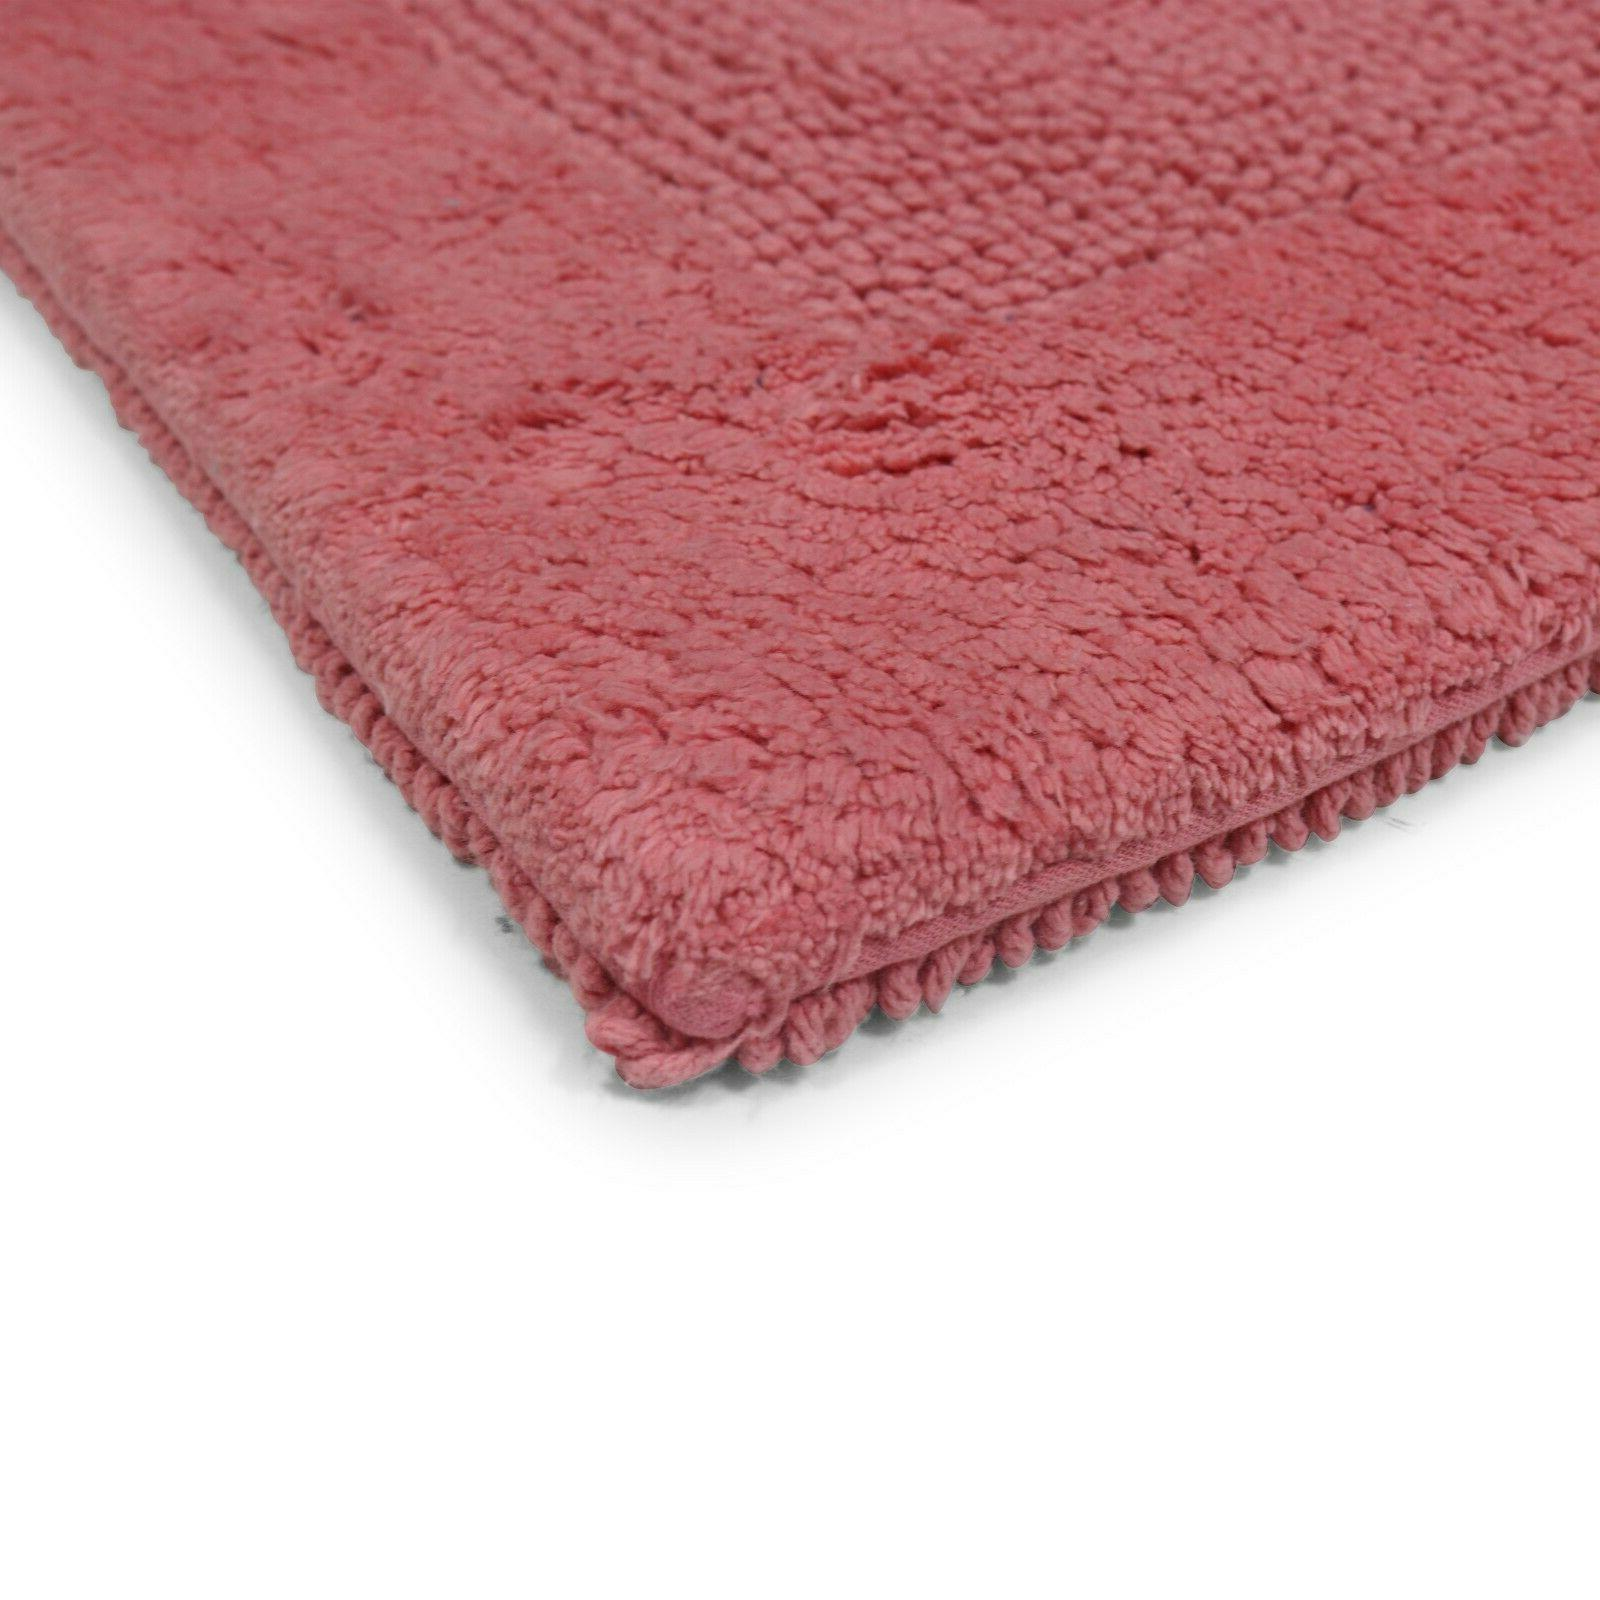 Provence Bath Rug 21 100% Cotton Soft Bathroom Mat Colors